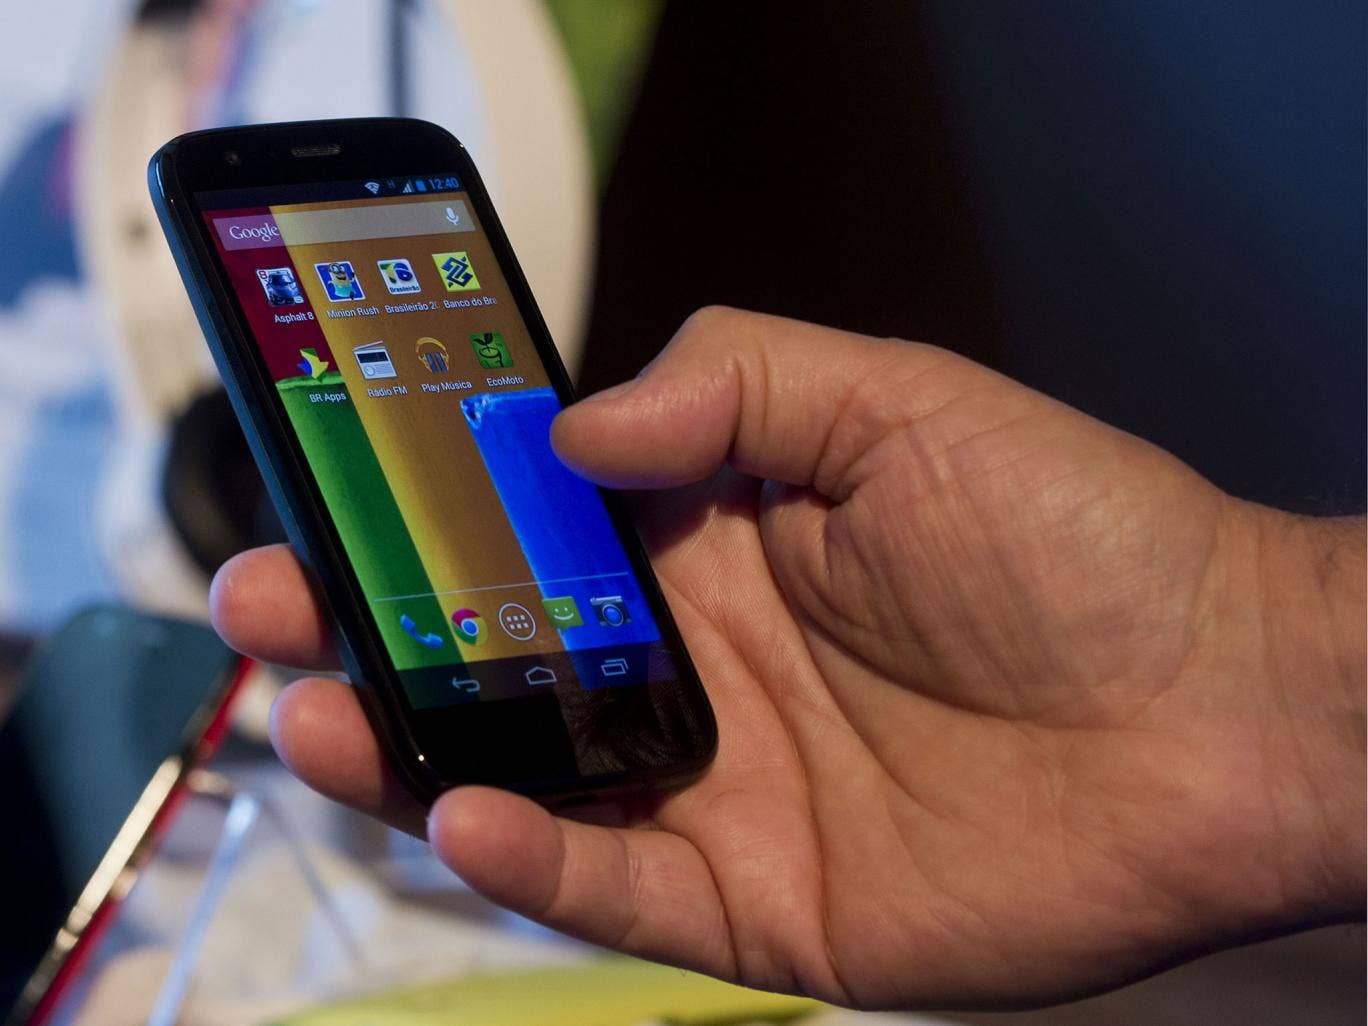 The new low cost smartphone of Motorola, 'Motorola Moto G', is displayed in Sao Paulo, Brazil on November 13, 2013. The smartphone, with dimensions 65.9mm W x 129.9mm H x 6.0 - 11.6mm D is equipped with a Qualcomm Snapdragon 400 with quad-core 1,2 GHz CPU